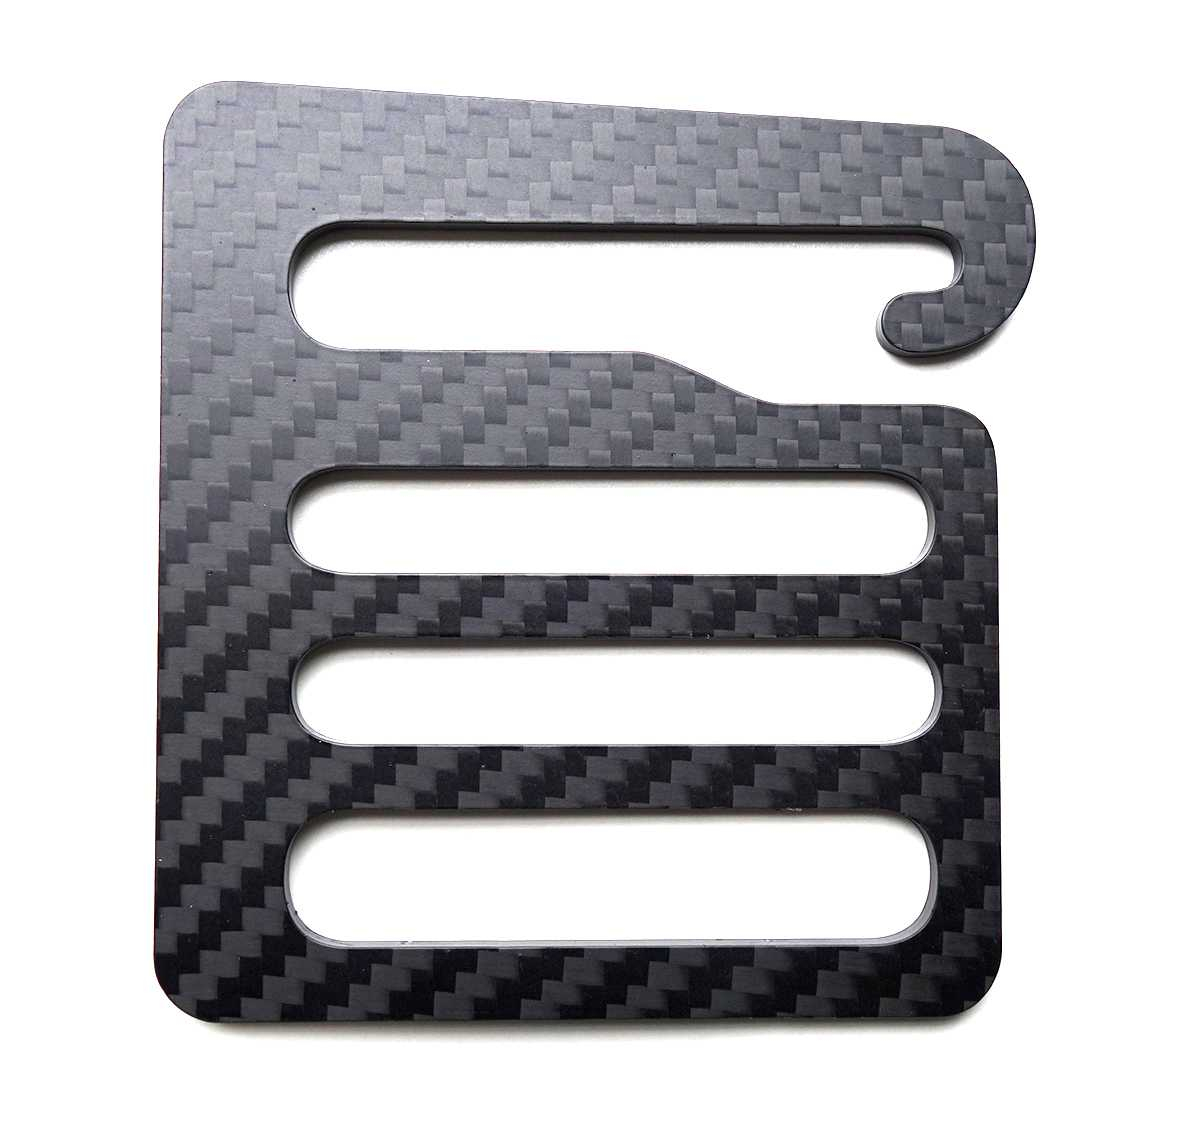 Top quality 3k carbon fiber plate for medical device